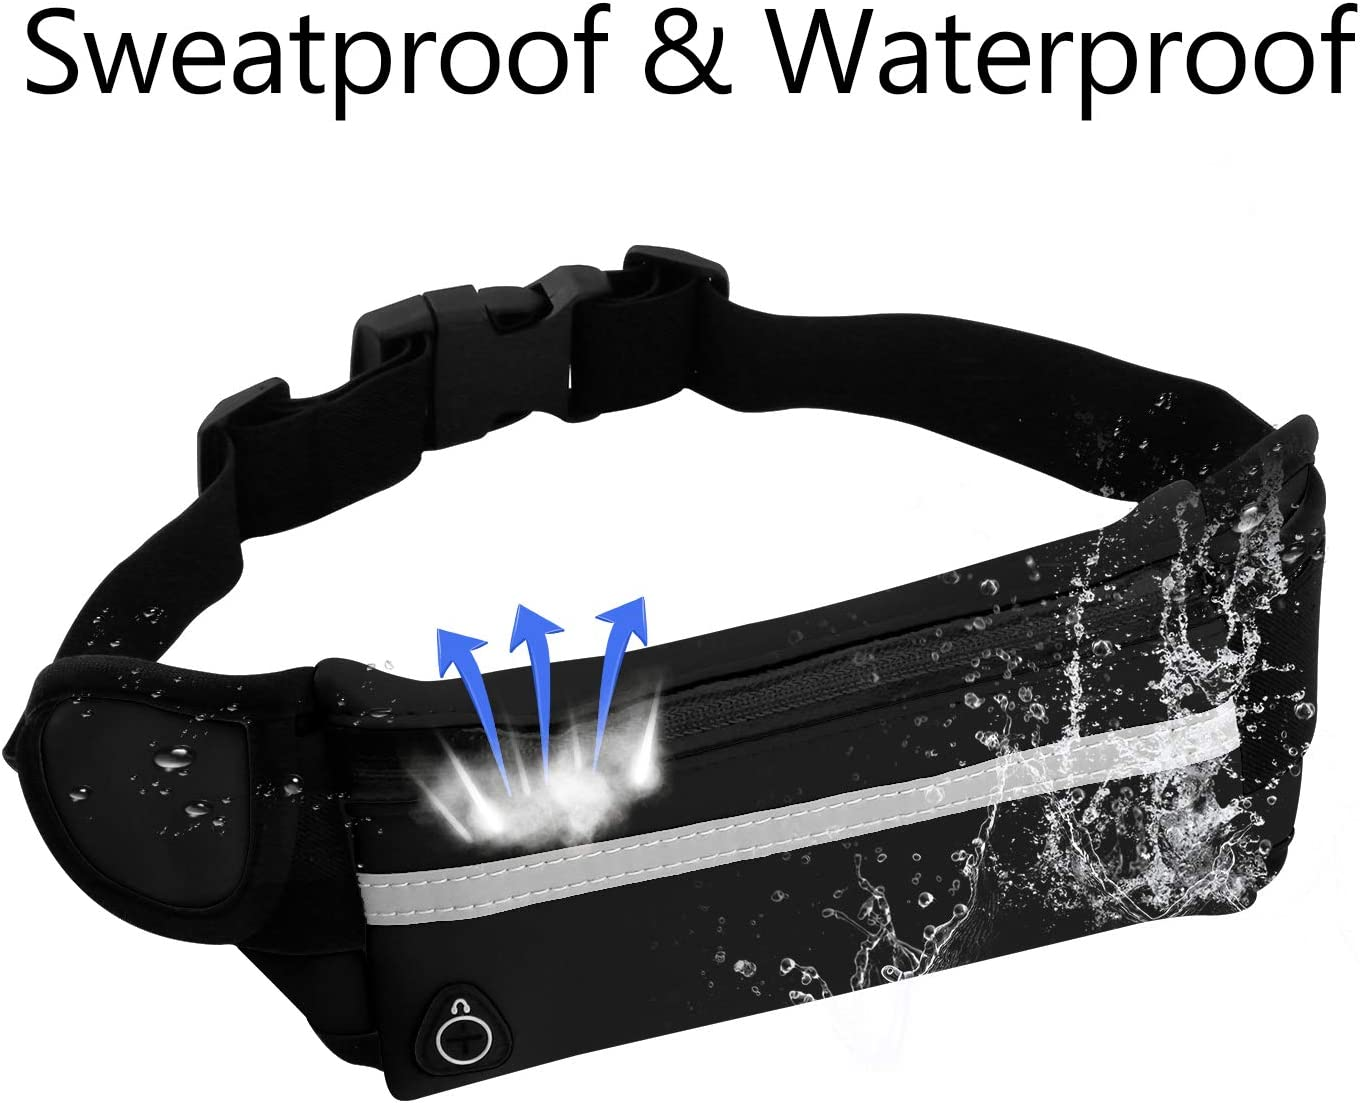 Waterproof Runners Sports Fanny Pack Vetoo Running Belt Waist Pack for Man Women Adjustable Exercise Fitness Pouch Bag Suit for Most of Mobile Phone 2-Pack